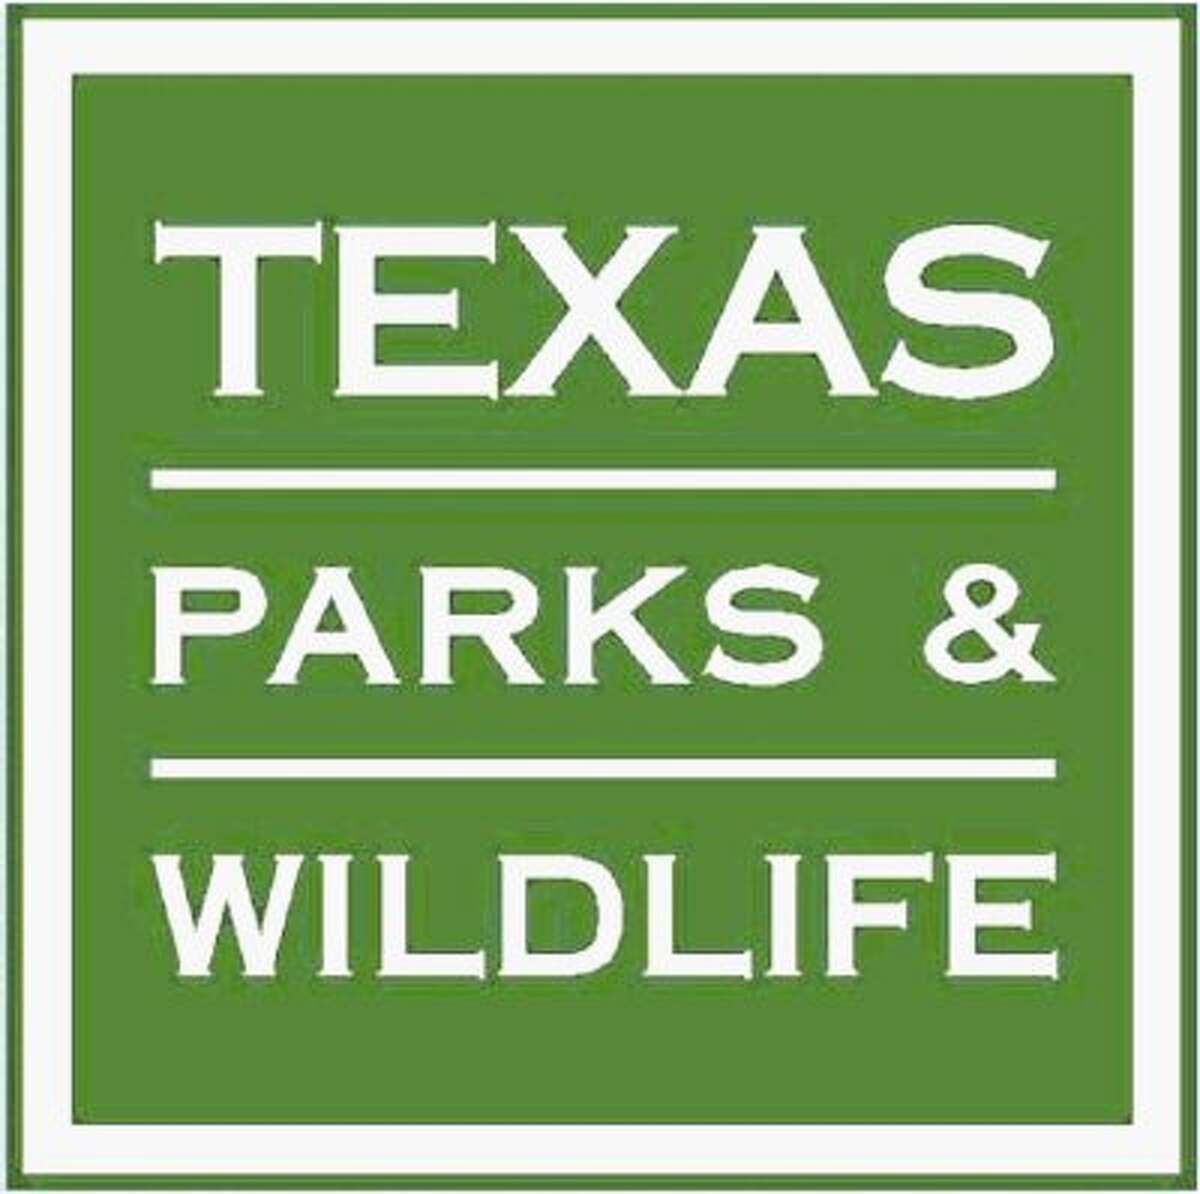 http://www.tpwd.state.tx.us/calendar/texas-outdoor-family-workshops